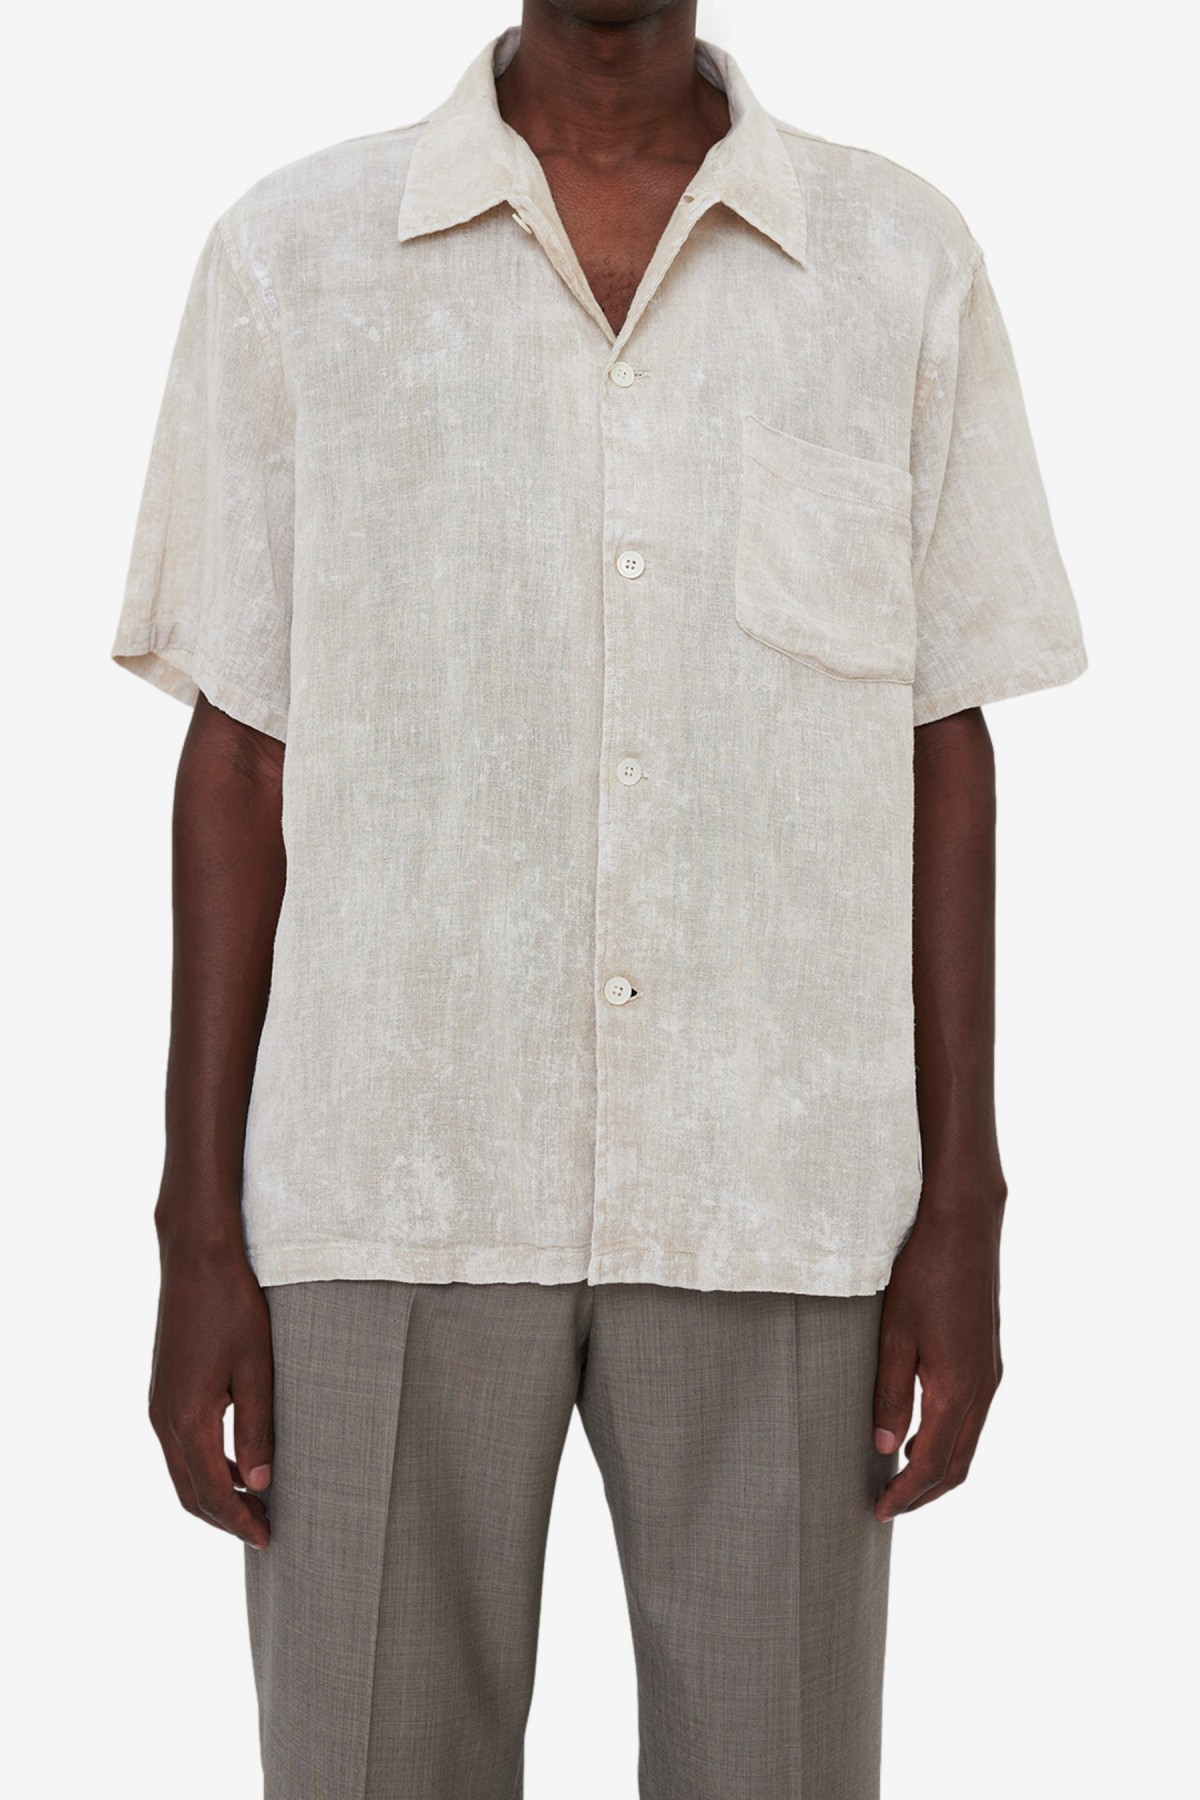 Our Legacy Box Shirt Shortsleeve in White Coated Cotton Linen